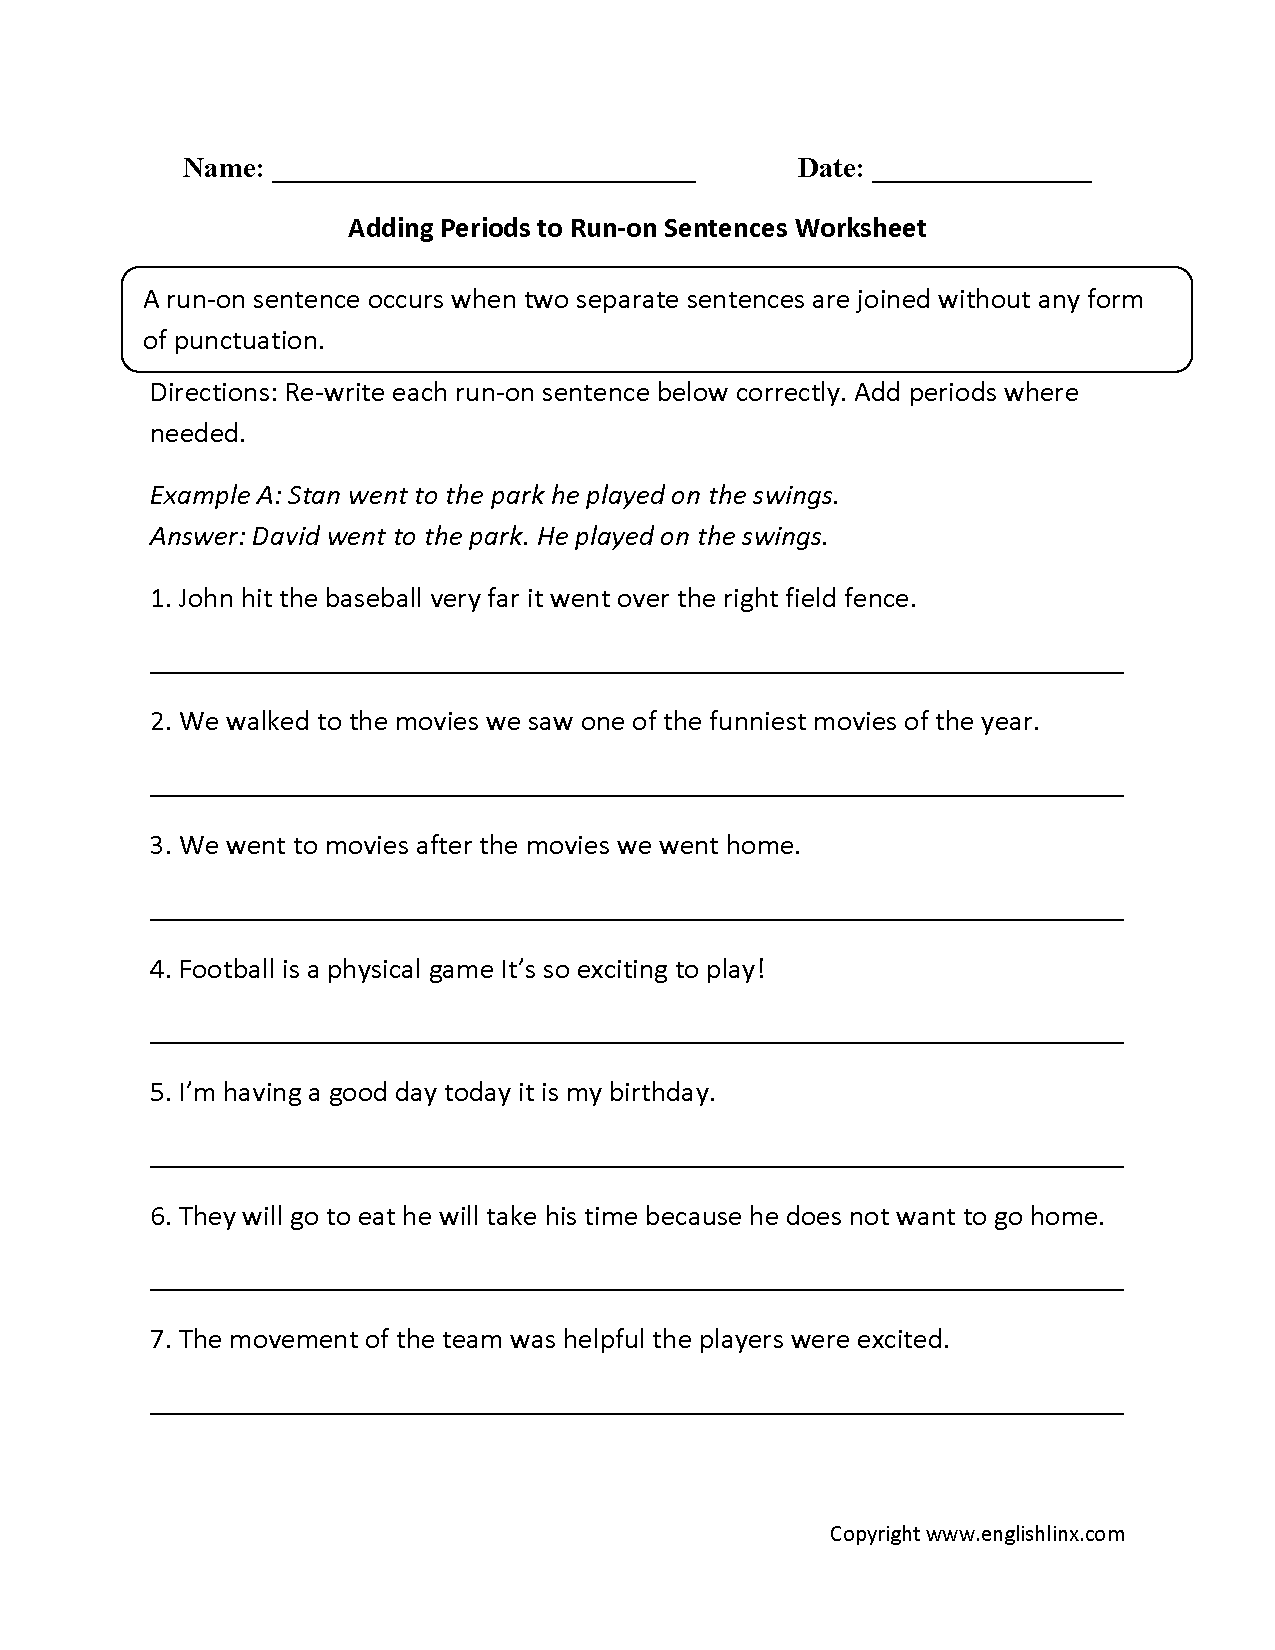 Worksheet Correct Sentences Worksheet sentences worksheets run on worksheets